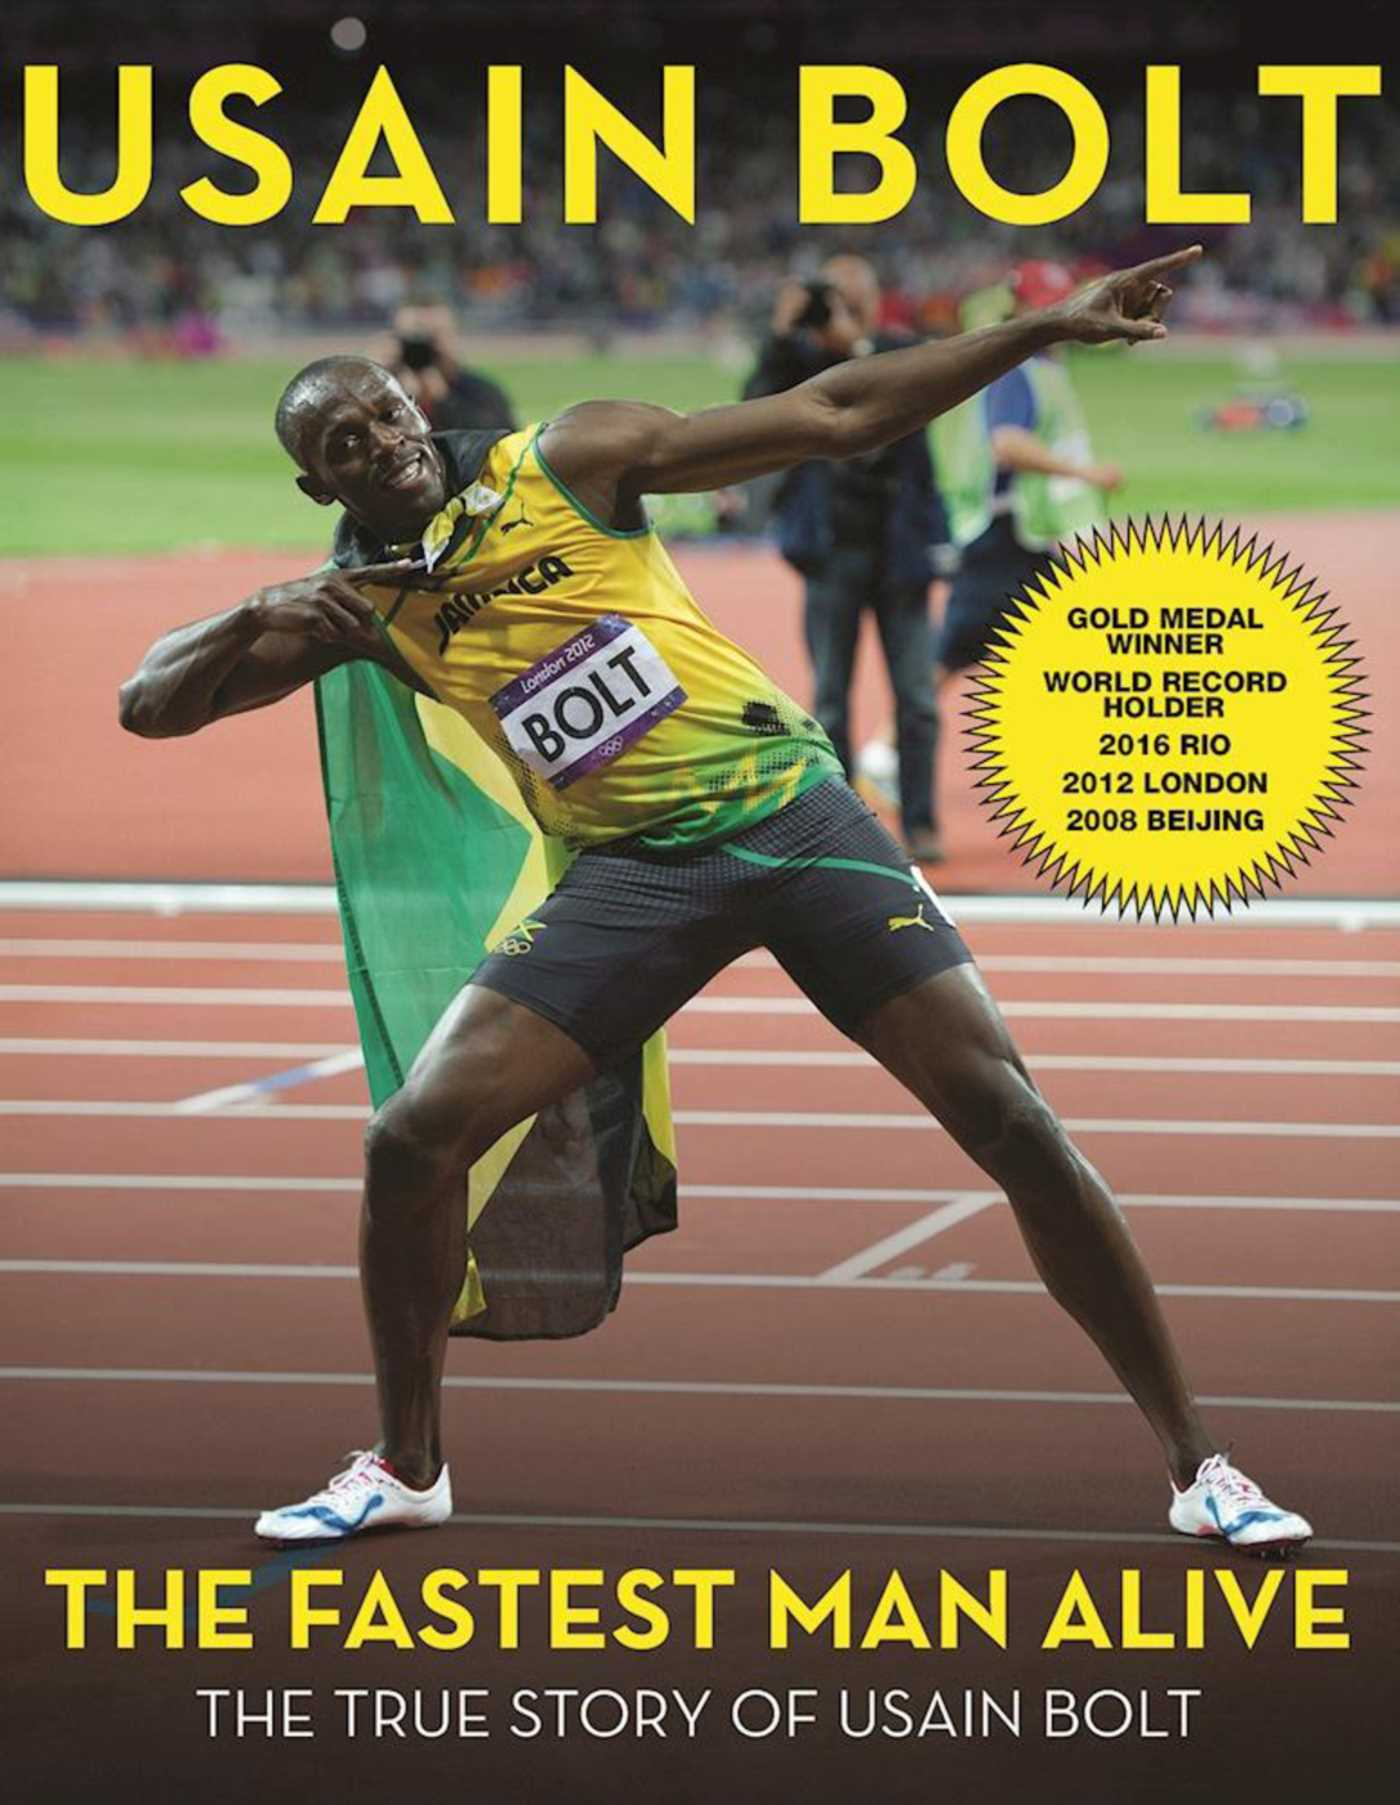 Book Cover Image Jpg The Fastest Man Alive